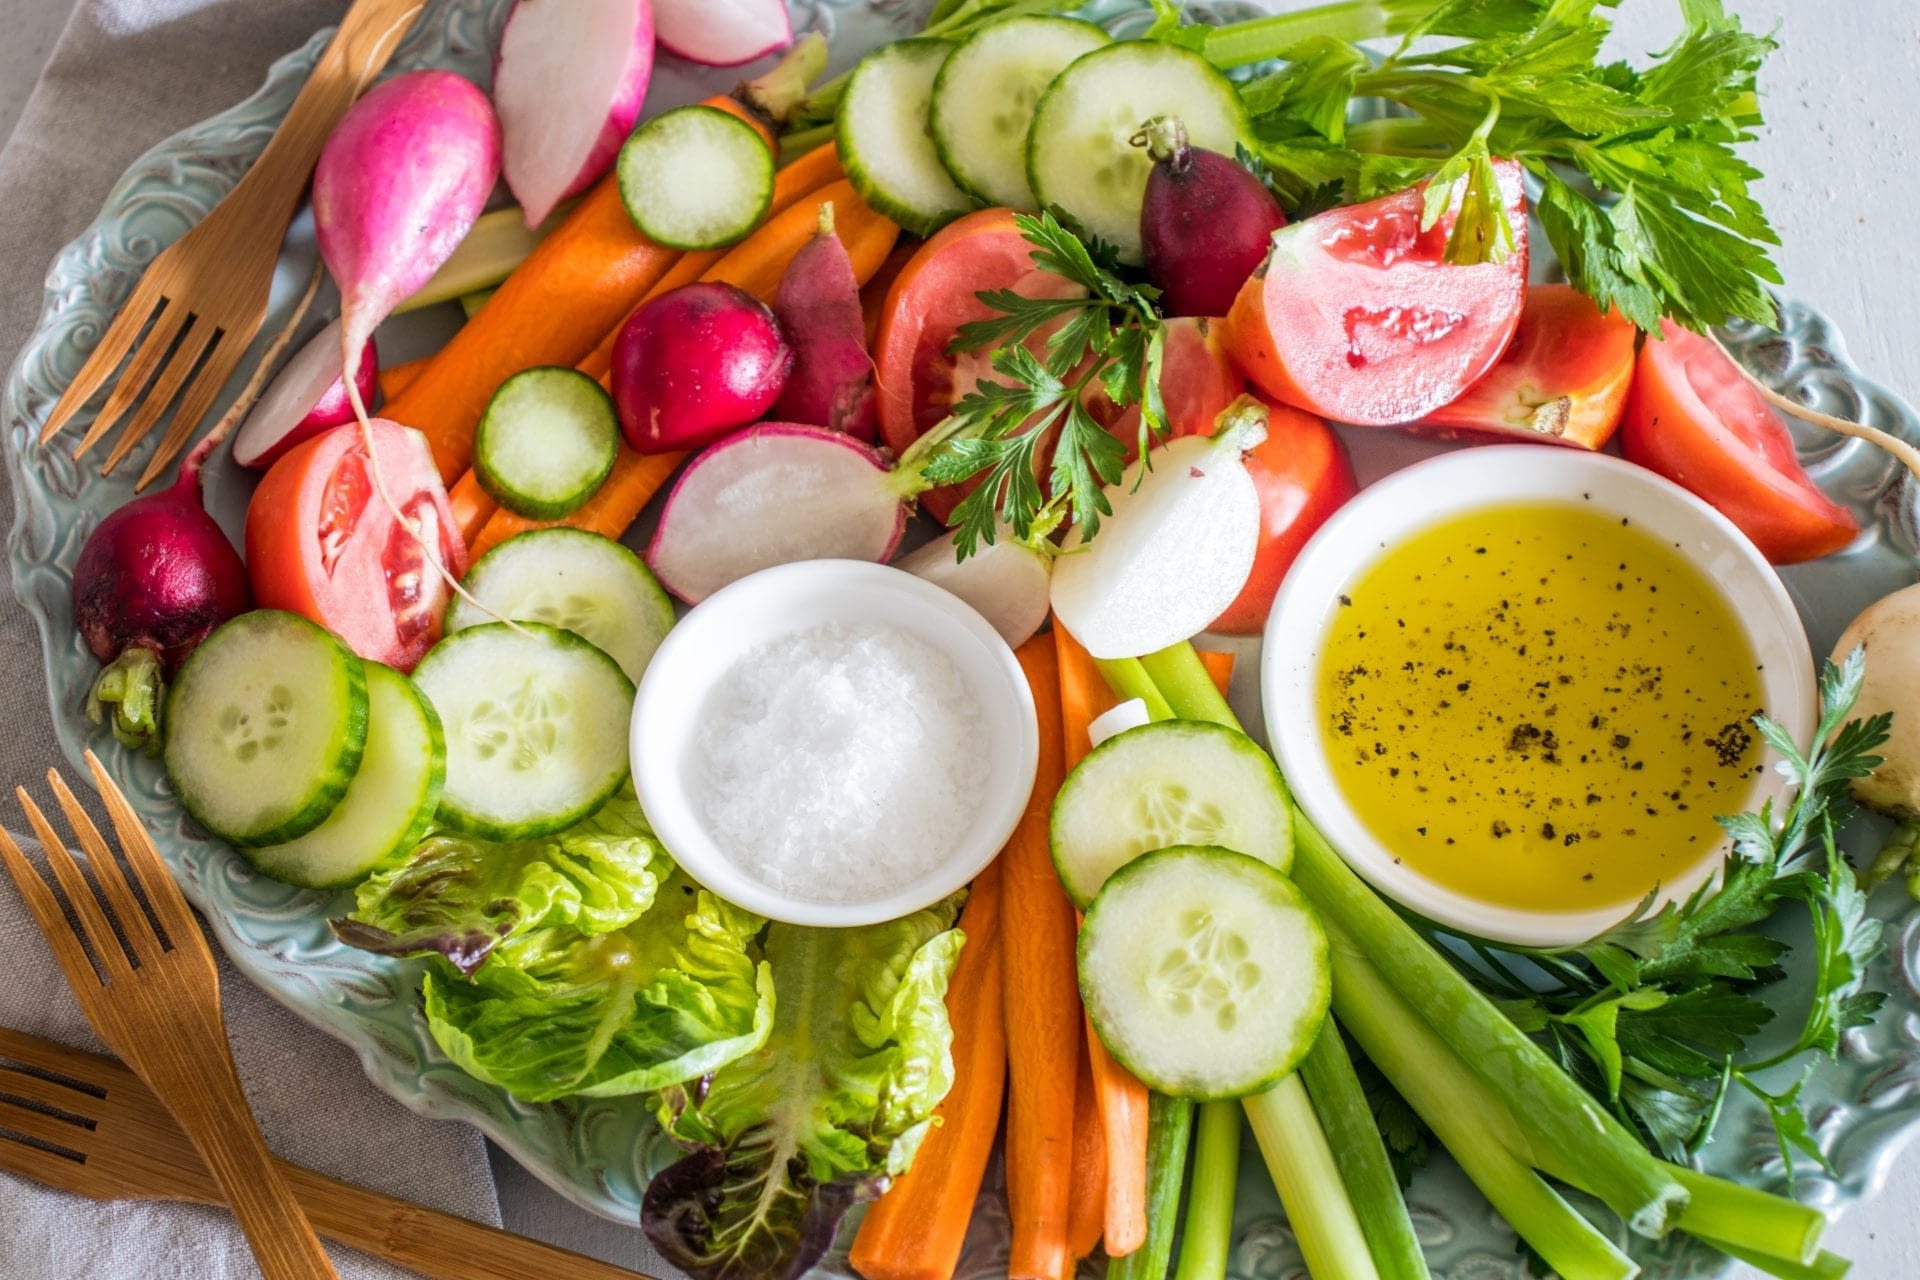 Italian Crudités (Cazzimperio) with Olive Oil Dip